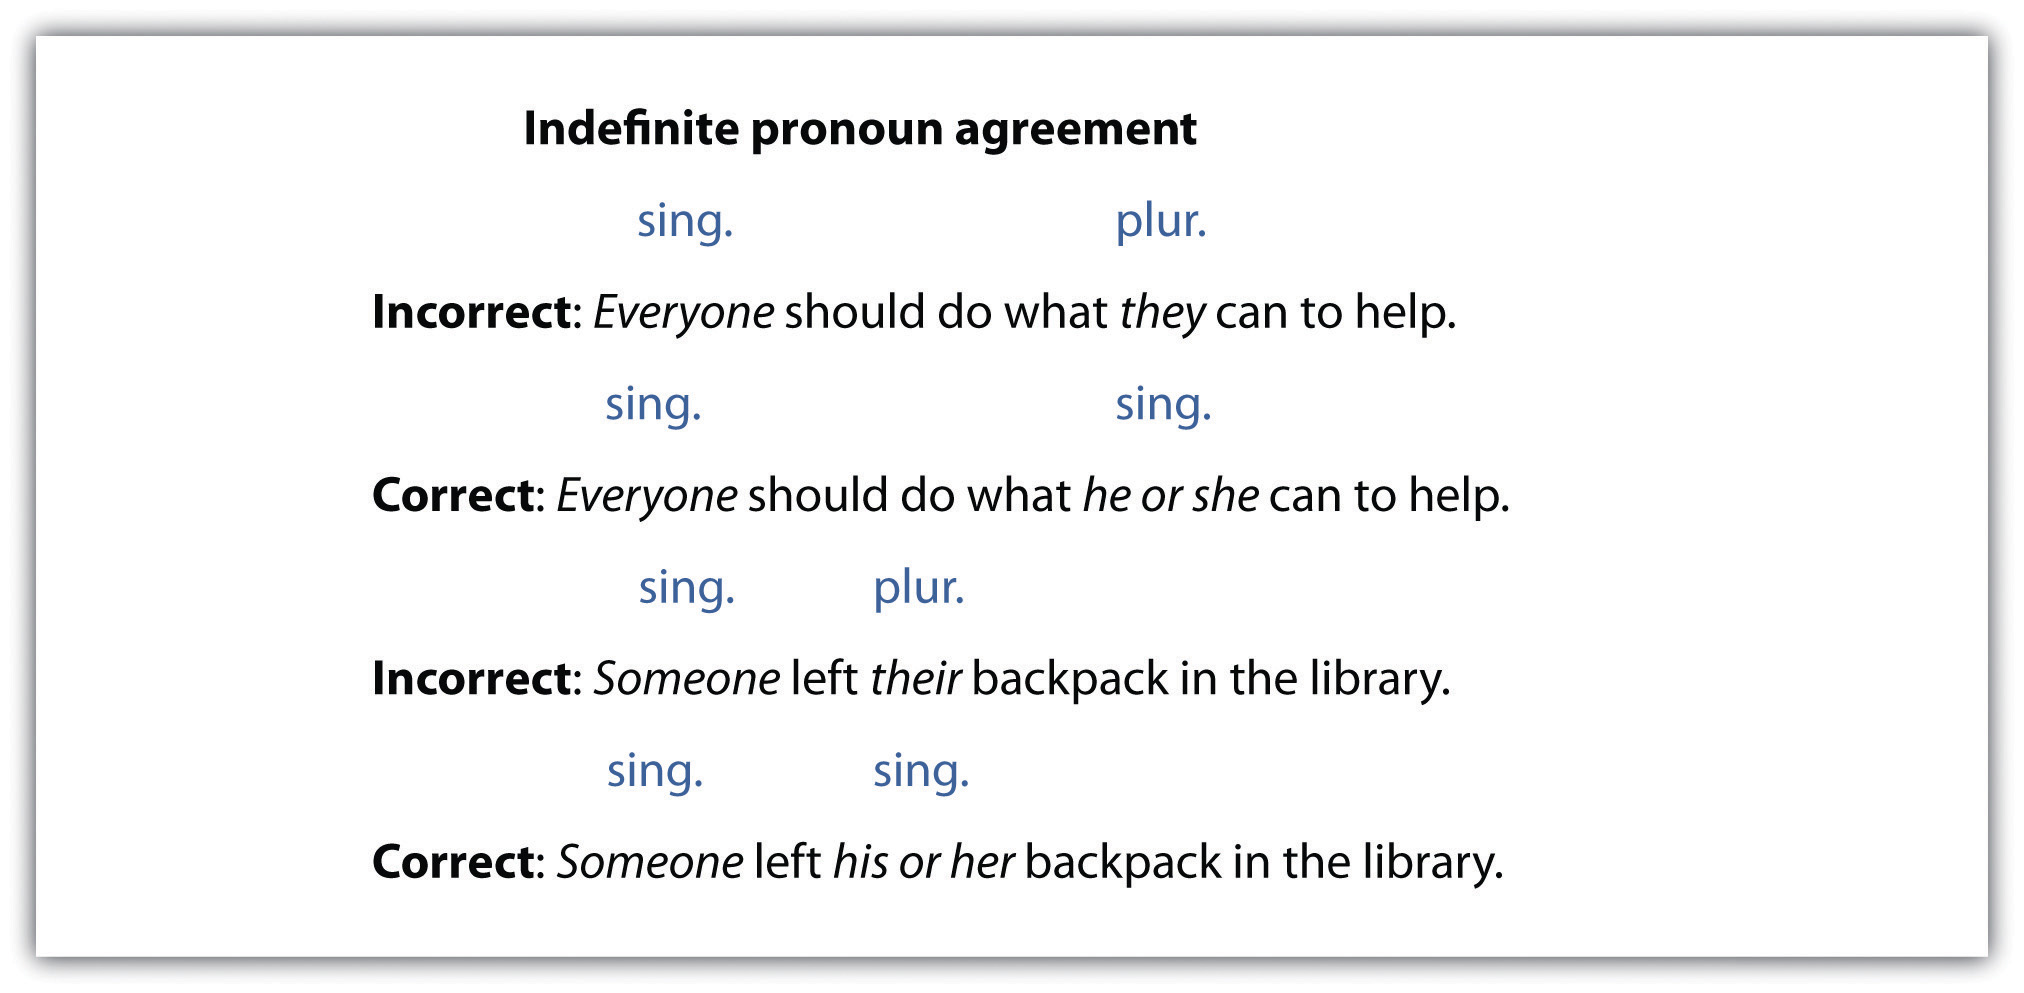 Worksheet An Indefinite Pronoun pronouns indefinite and agreement